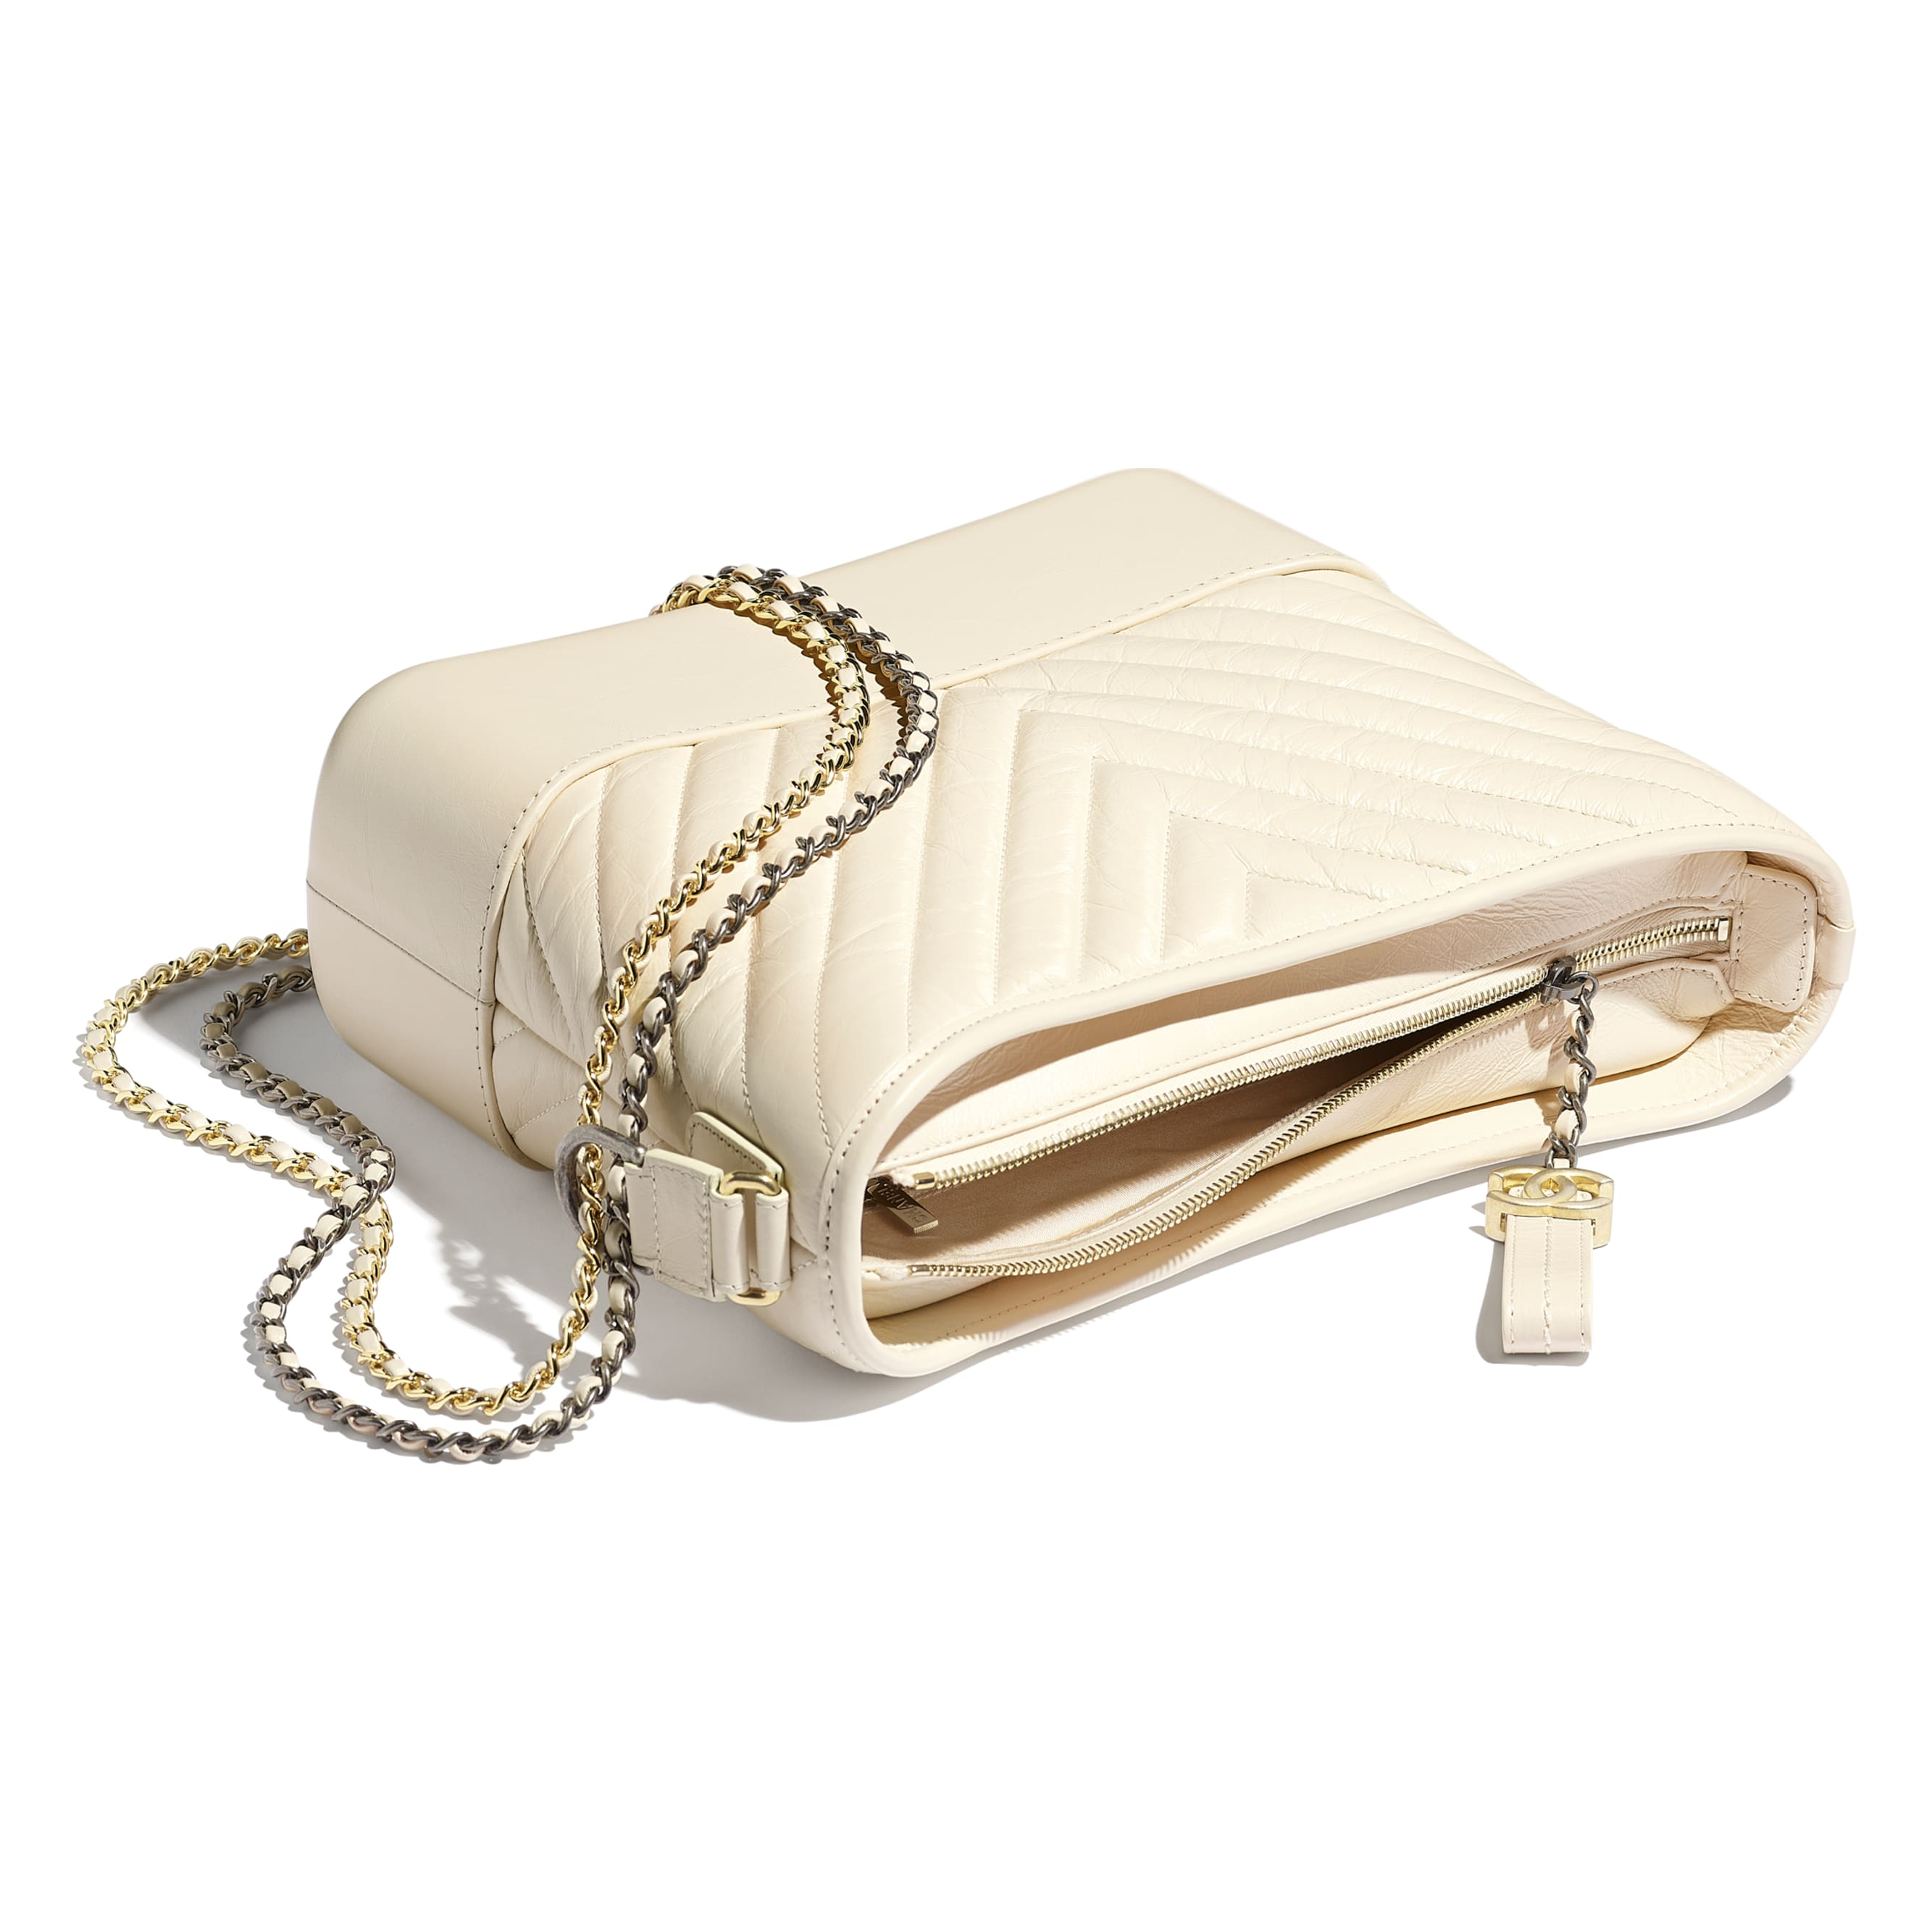 CHANEL'S GABRIELLE Large Hobo Bag - Light Beige - Aged Calfskin, Smooth Calfskin, Gold-Tone & Silver-Tone Metal - CHANEL - Other view - see standard sized version